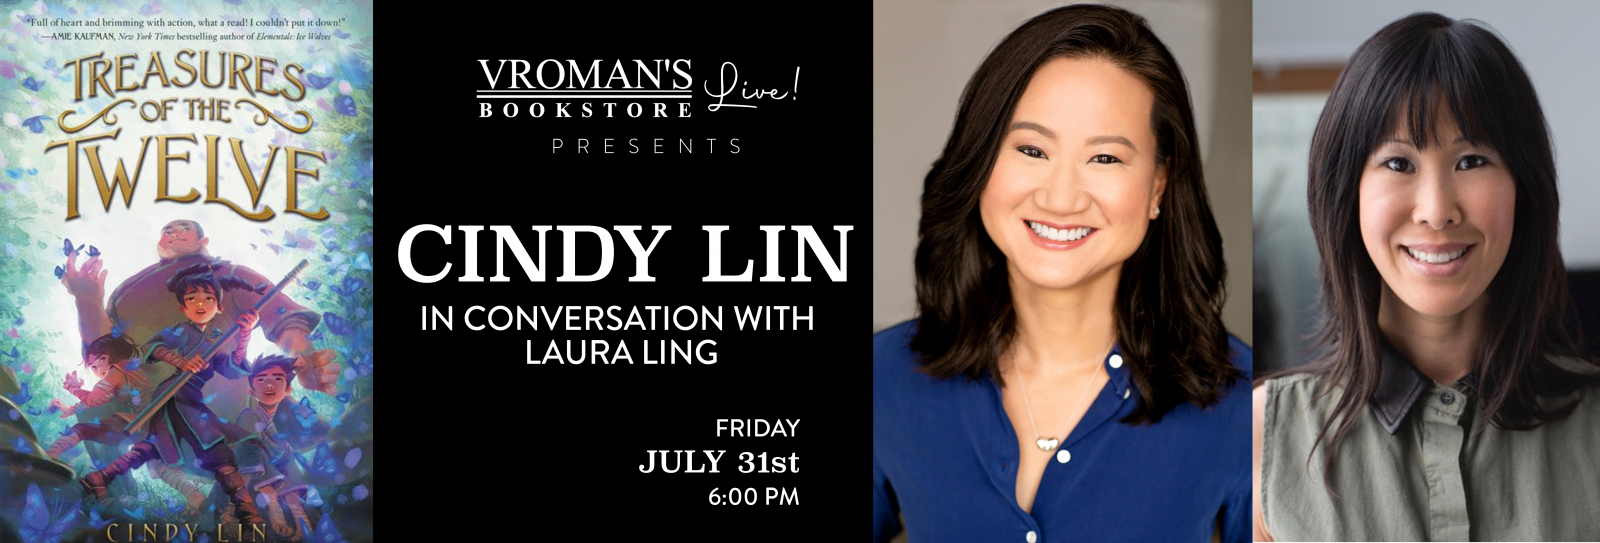 Vroman's Live presents Cindy Lin, in conversation with Laura Ling, on Friday July 31 at 6pm